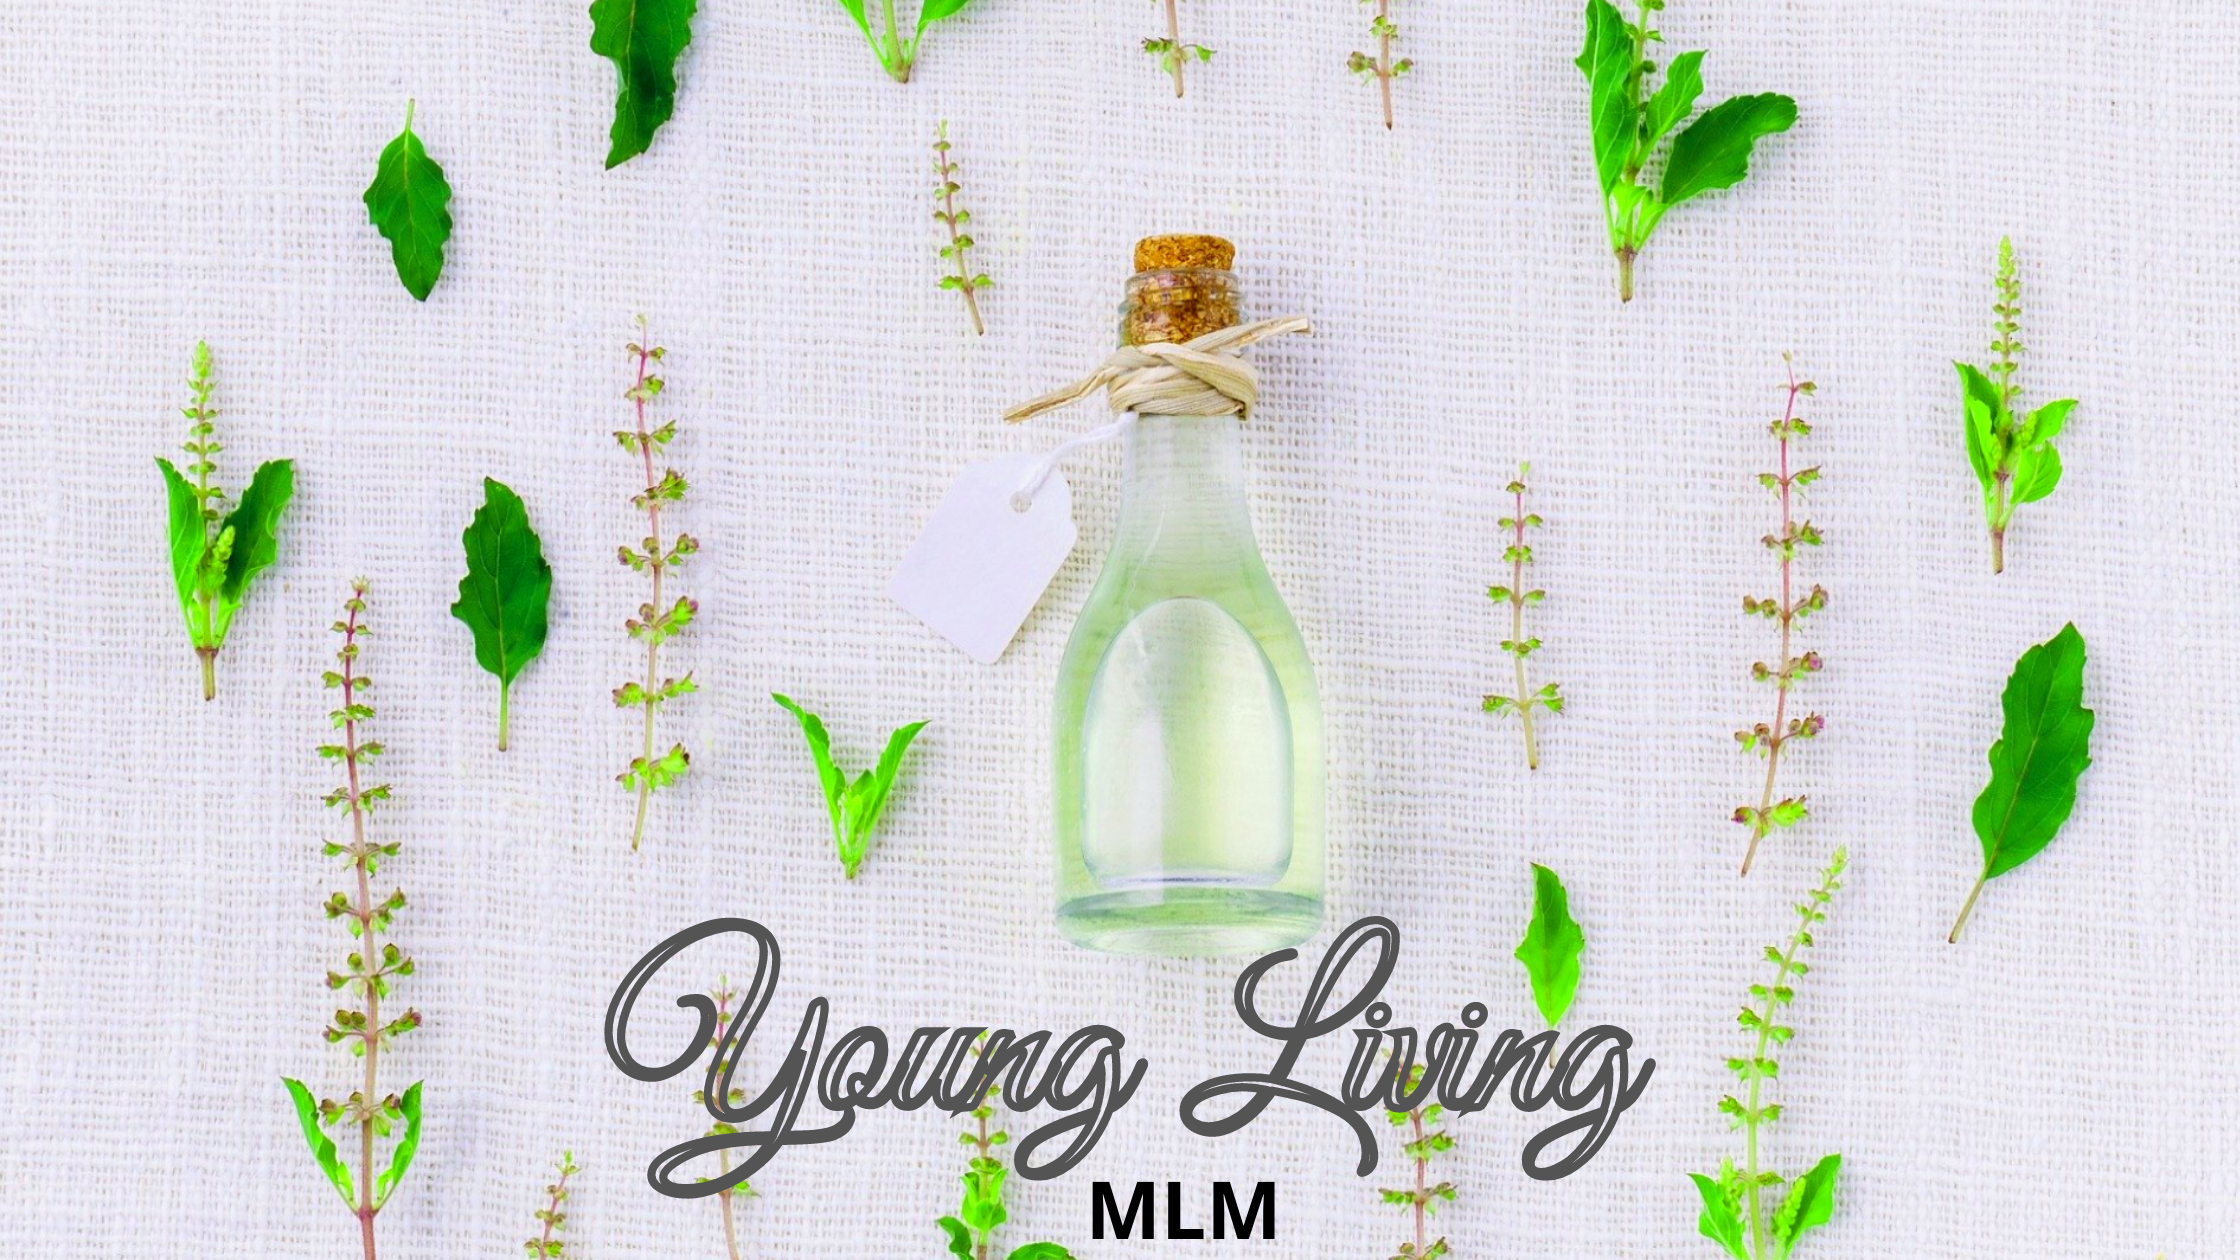 Is Young Living MLM a scam